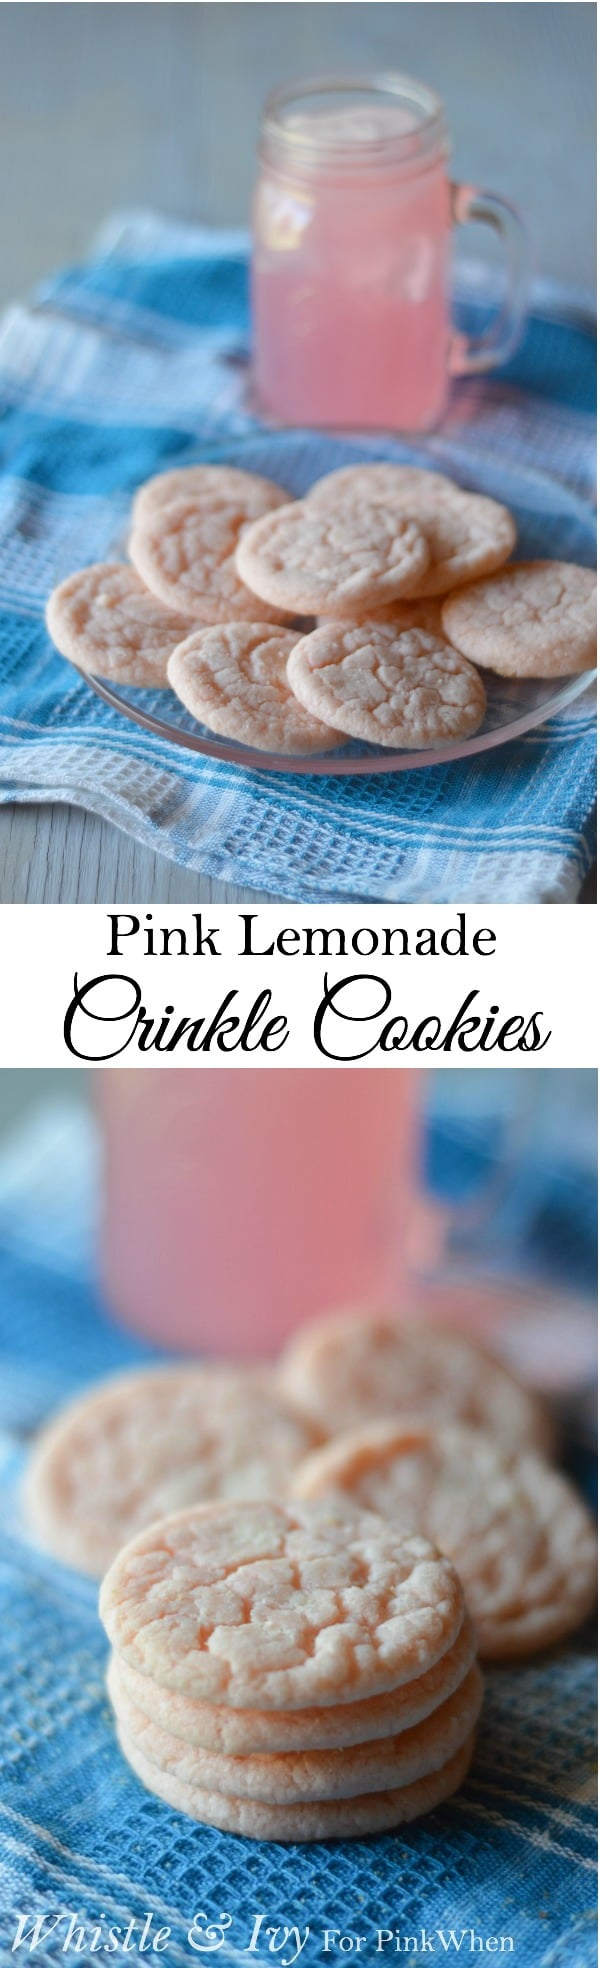 Pink Lemonade Crinkle Cookies - Perfect warm weather and backyard barbecue treat!